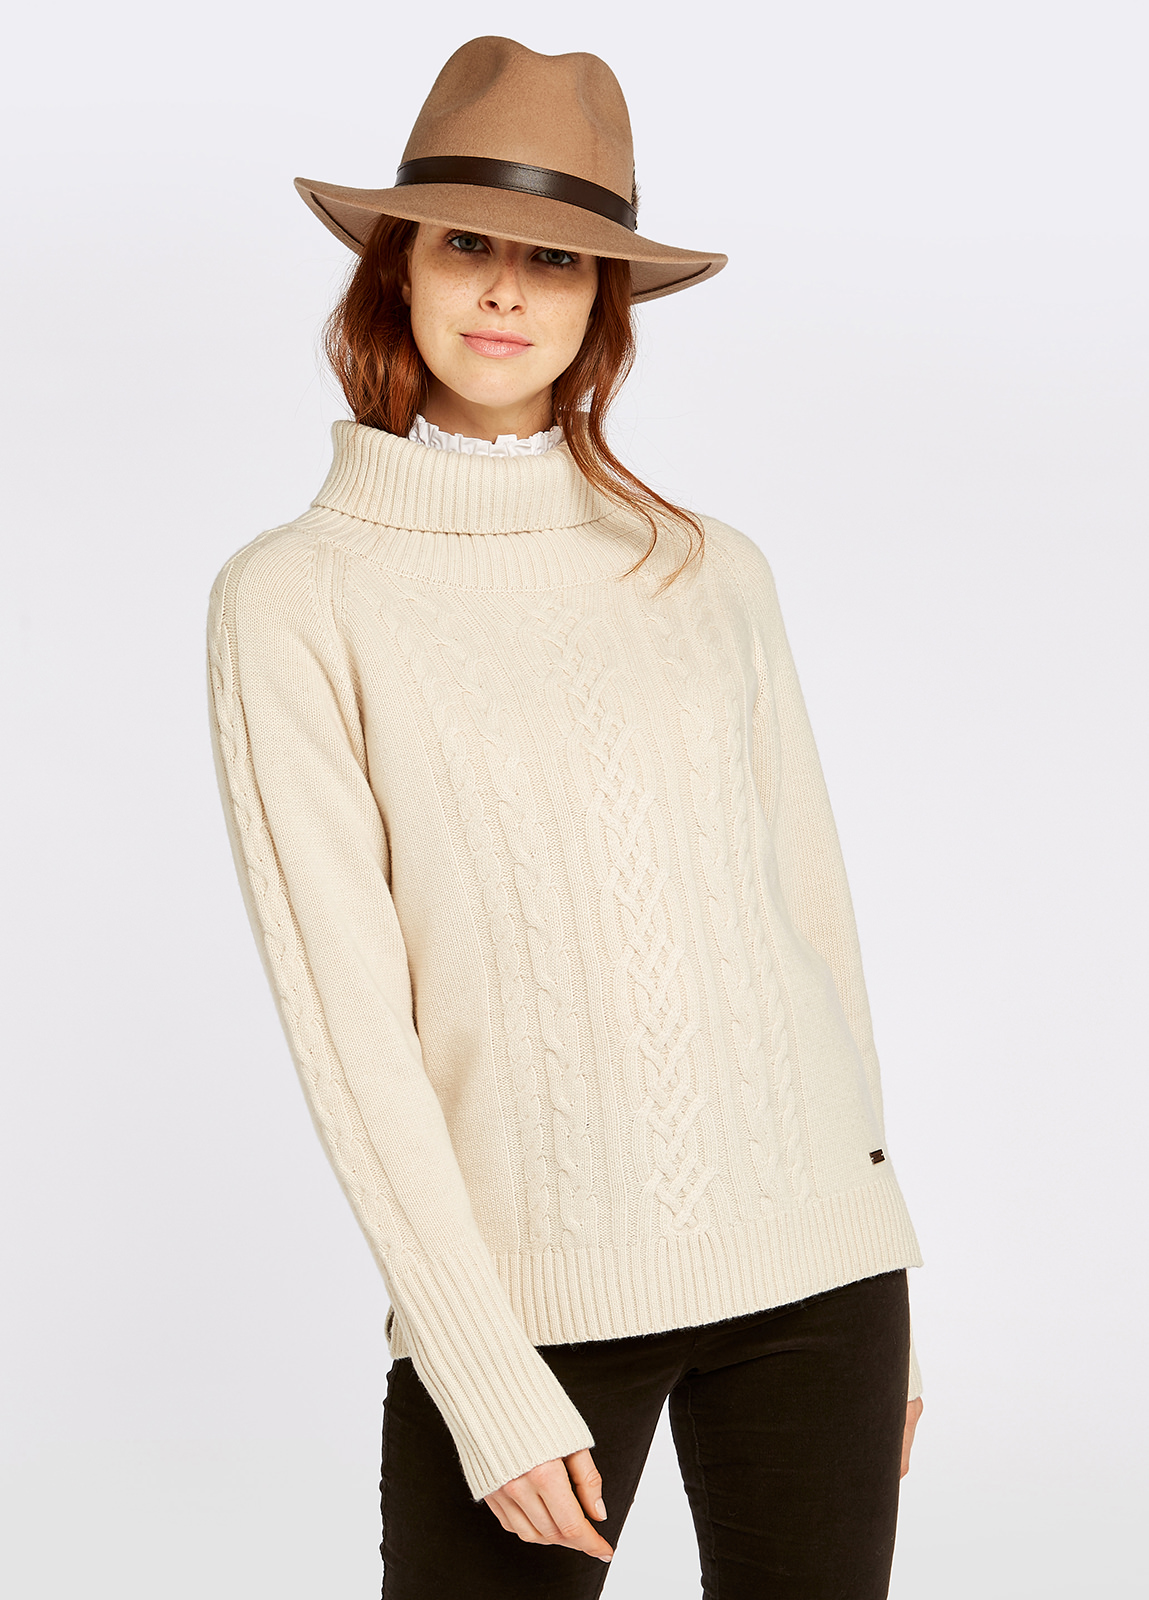 Kennedy Knitted Sweater - Chalk